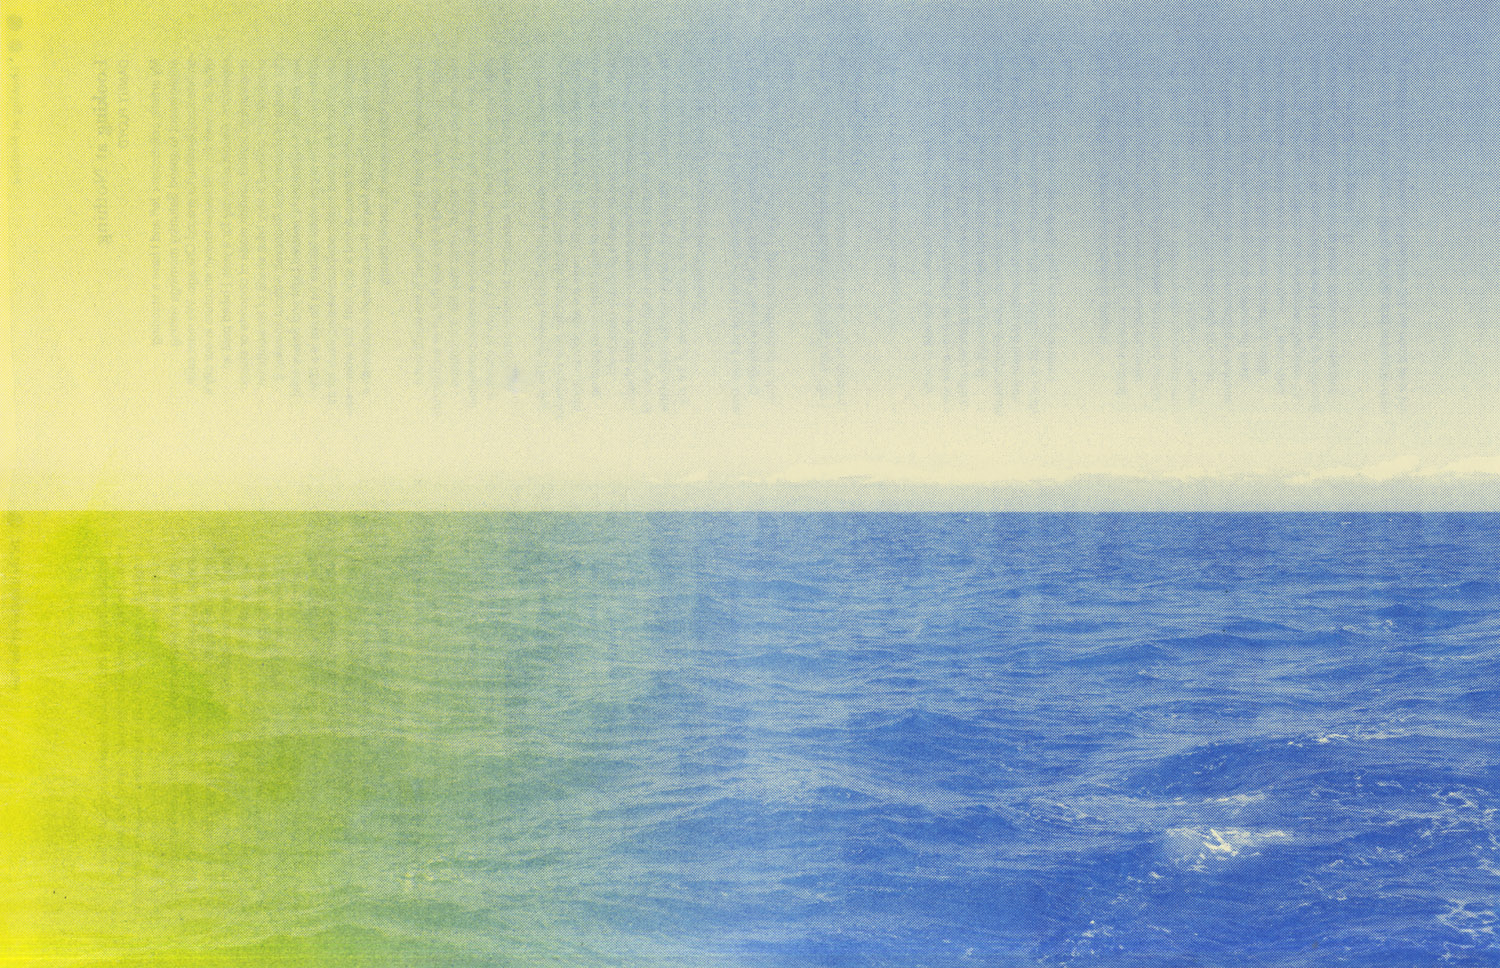 Third Object - In the Theater of the Sun   Danny Floyd - Looking at Nothing